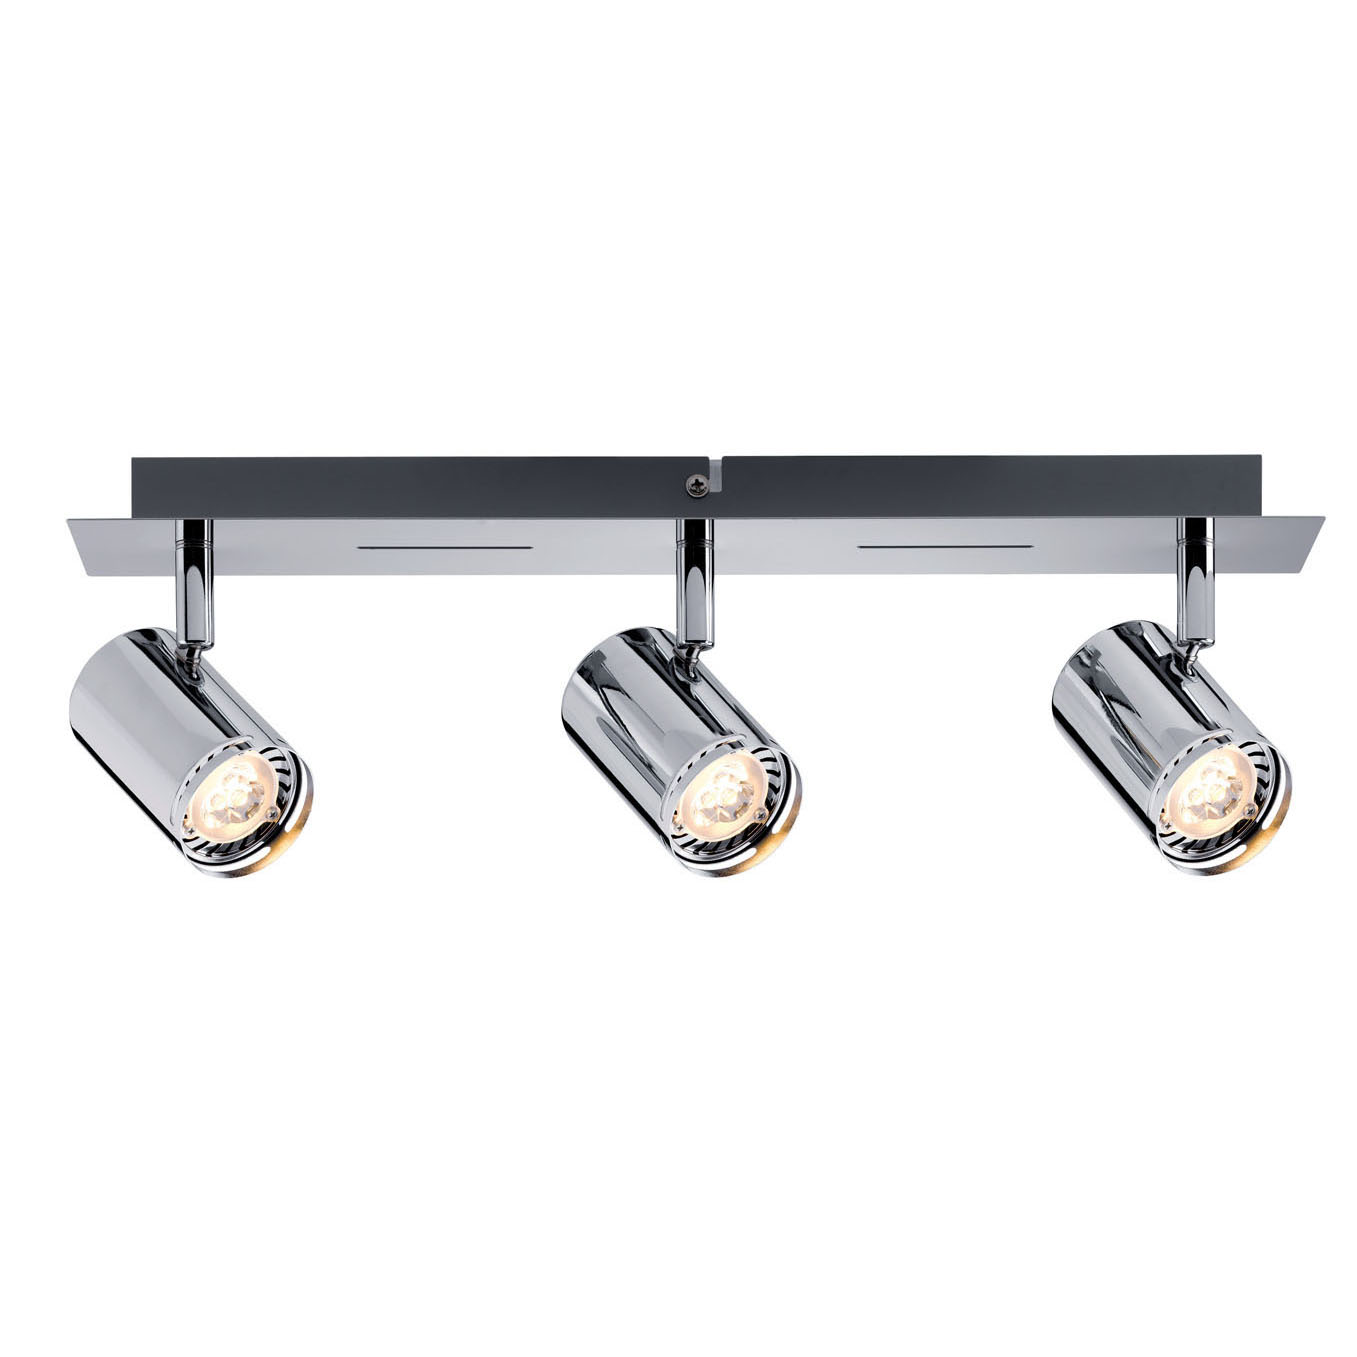 Ceiling Spot Lights – The Ideal Touch To Your Room | Warisan Lighting for Ceiling Double Spot Light  535wja